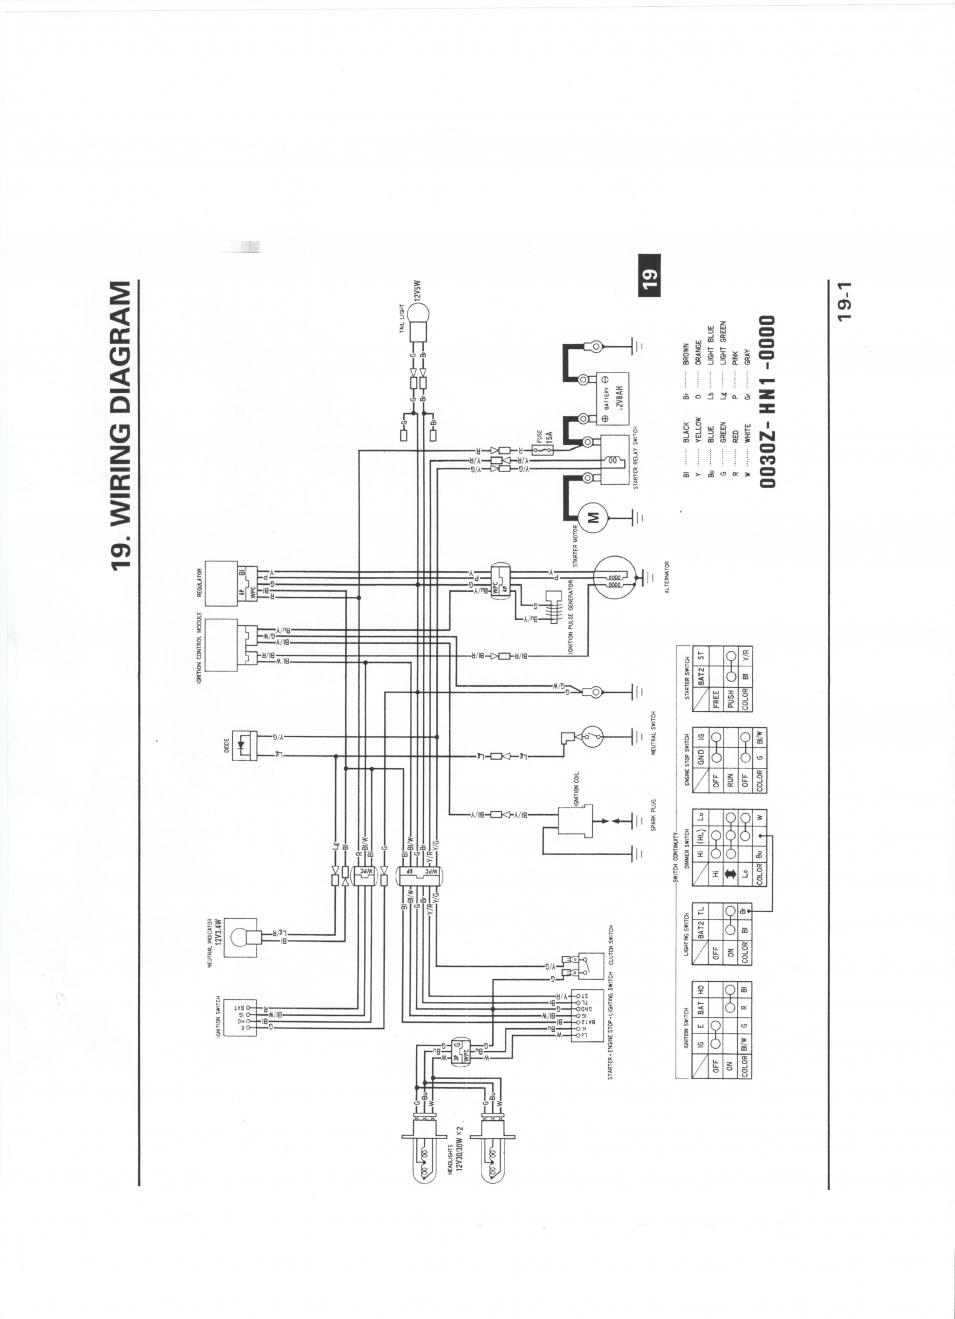 medium resolution of honda 400ex fuse diagram wiring diagram user2003 honda 400ex wiring wiring diagram expert 2003 honda 400ex